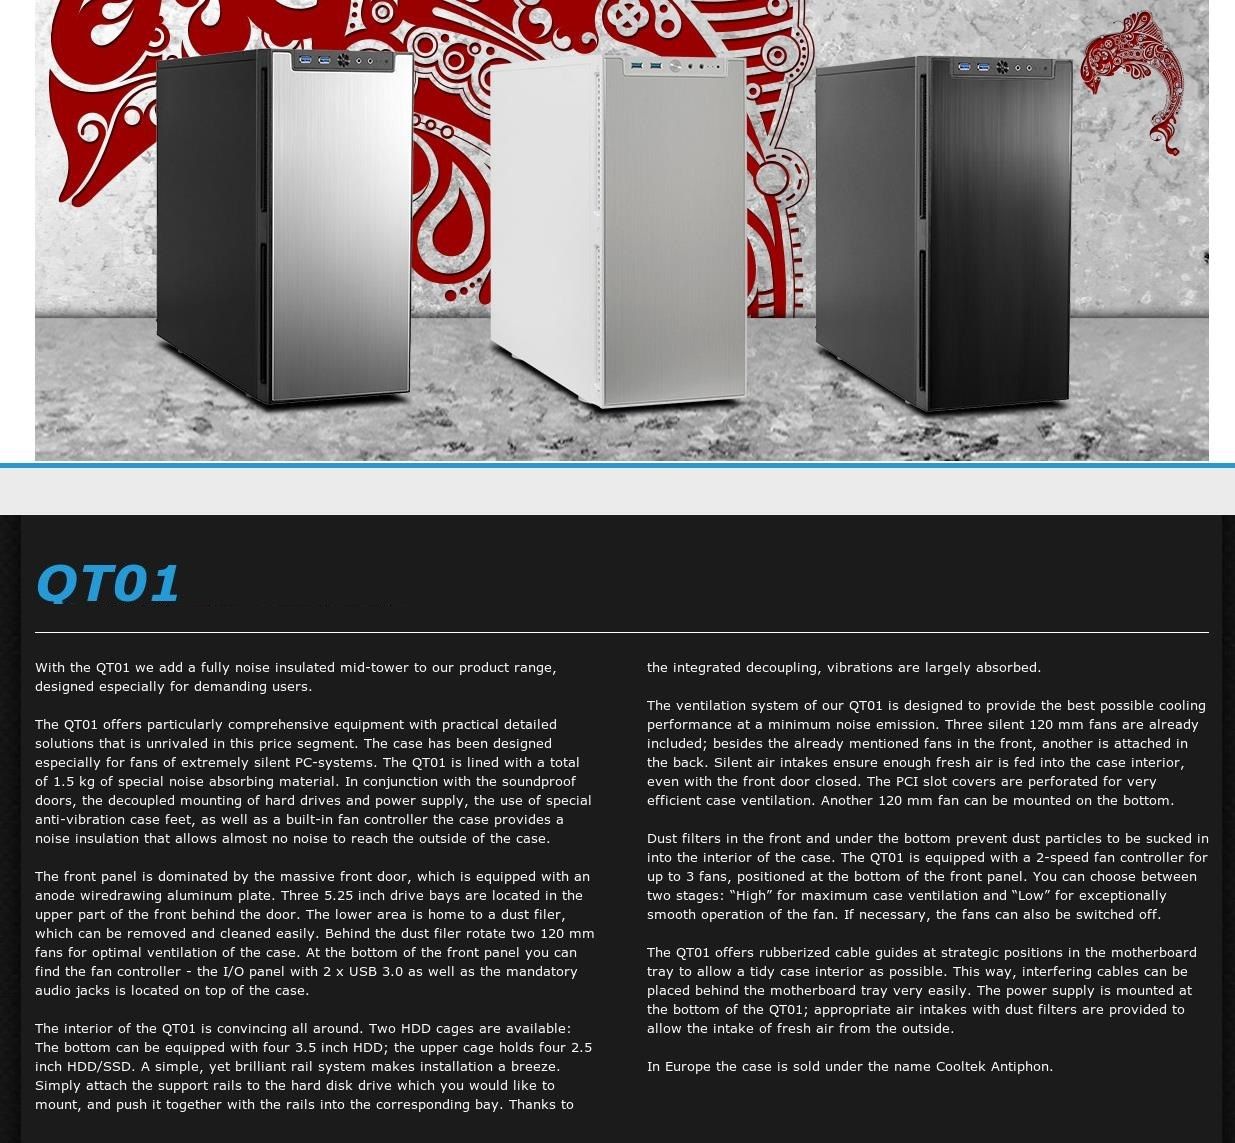 A large marketing image providing additional information about the product Jonsbo Quiet Angel QT01 Black ATX Case - Additional alt info not provided